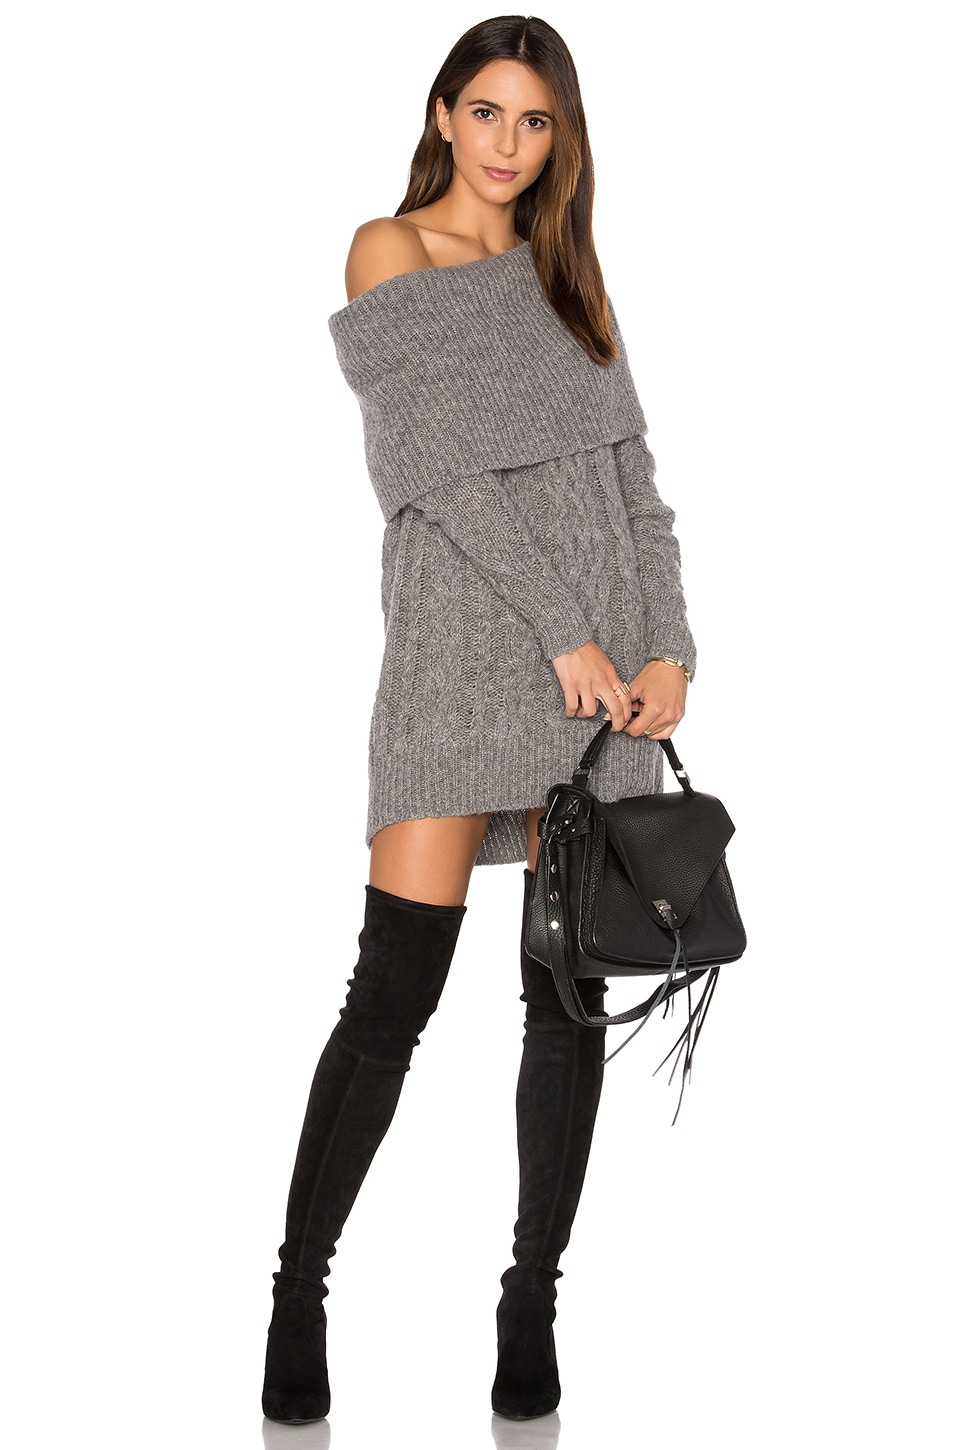 KENDALL + KYLIE Oversized Cable Tunic Sweater in Medium Heather Grey